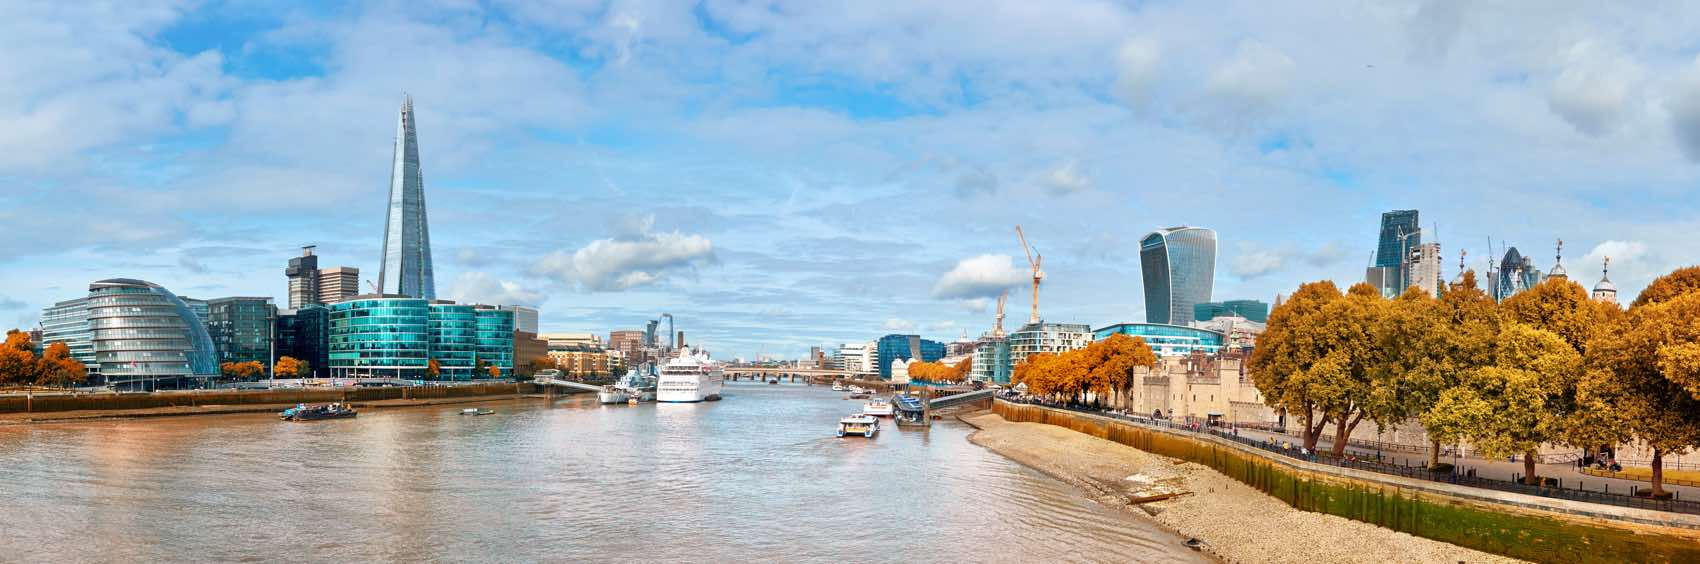 South Bank of The Thames on a bright day. Panoramic image taken from the Tower bridge.